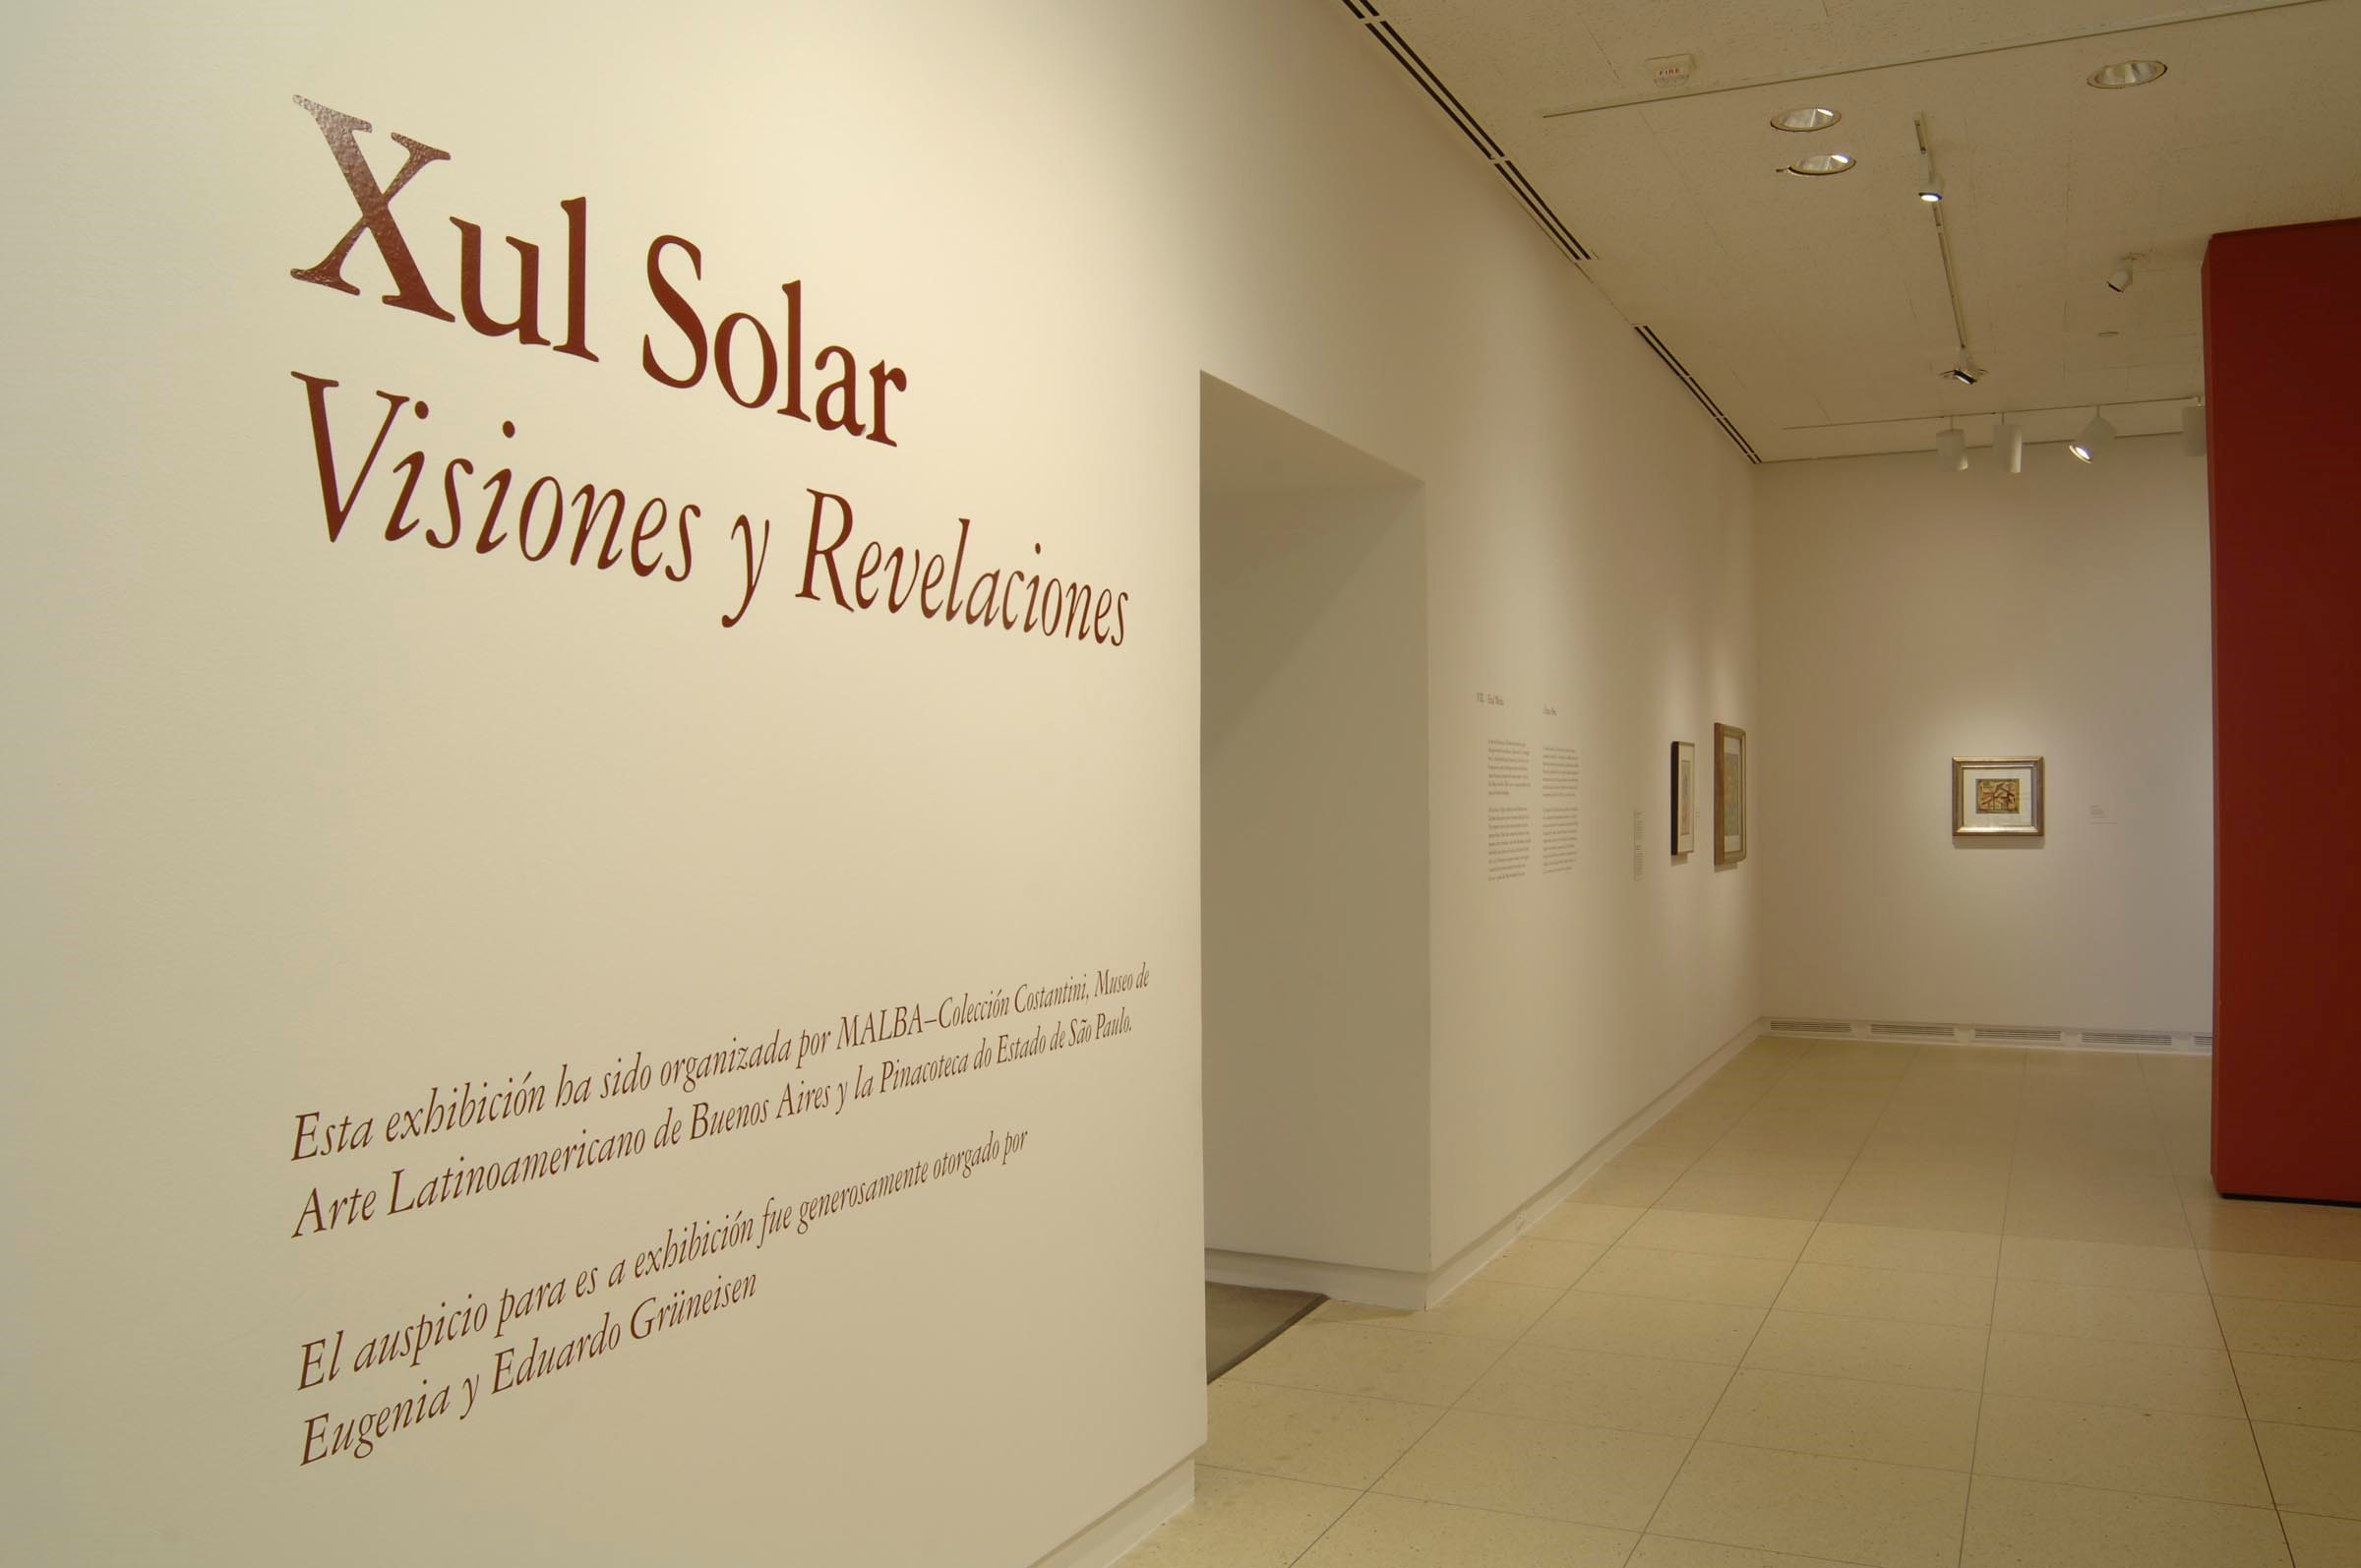 Xul Solar: Visions and Revelations